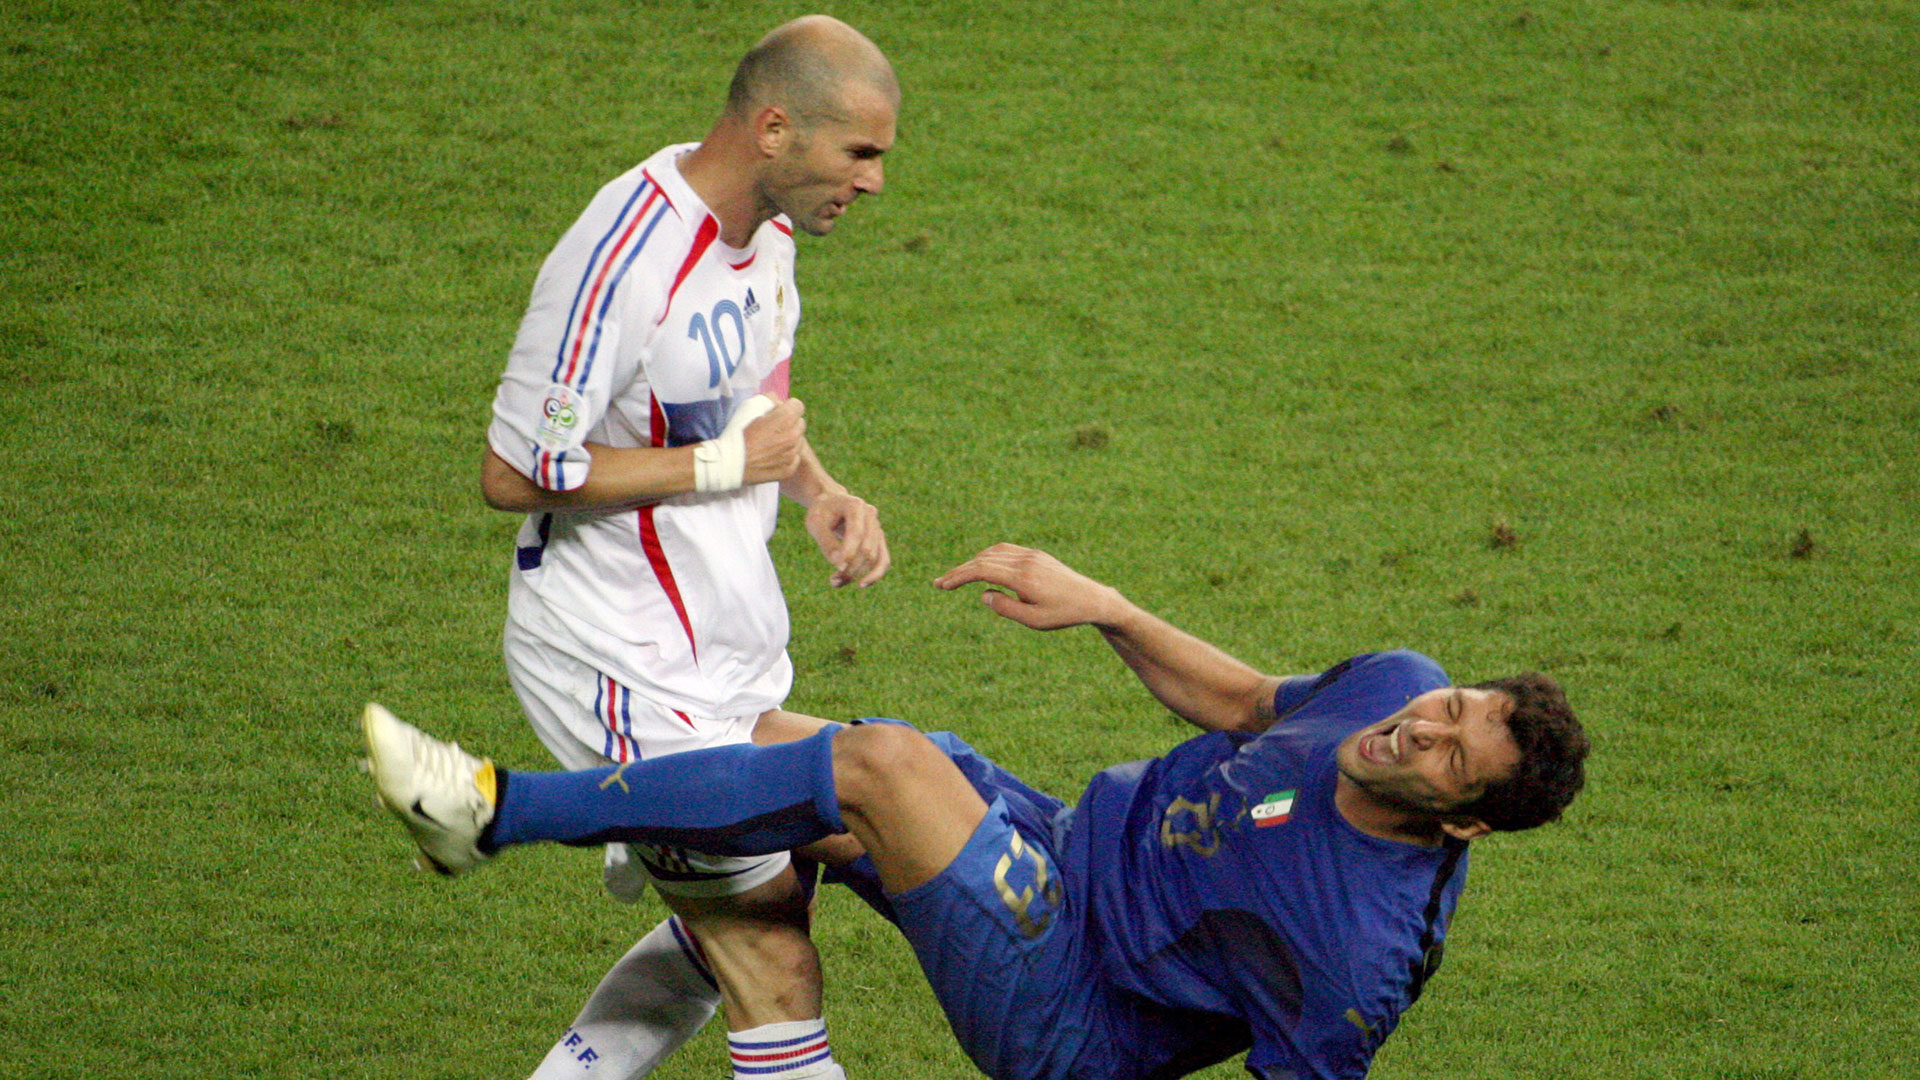 Zinedine Zidane Marco Materazzi France Italy World Cup final 2006